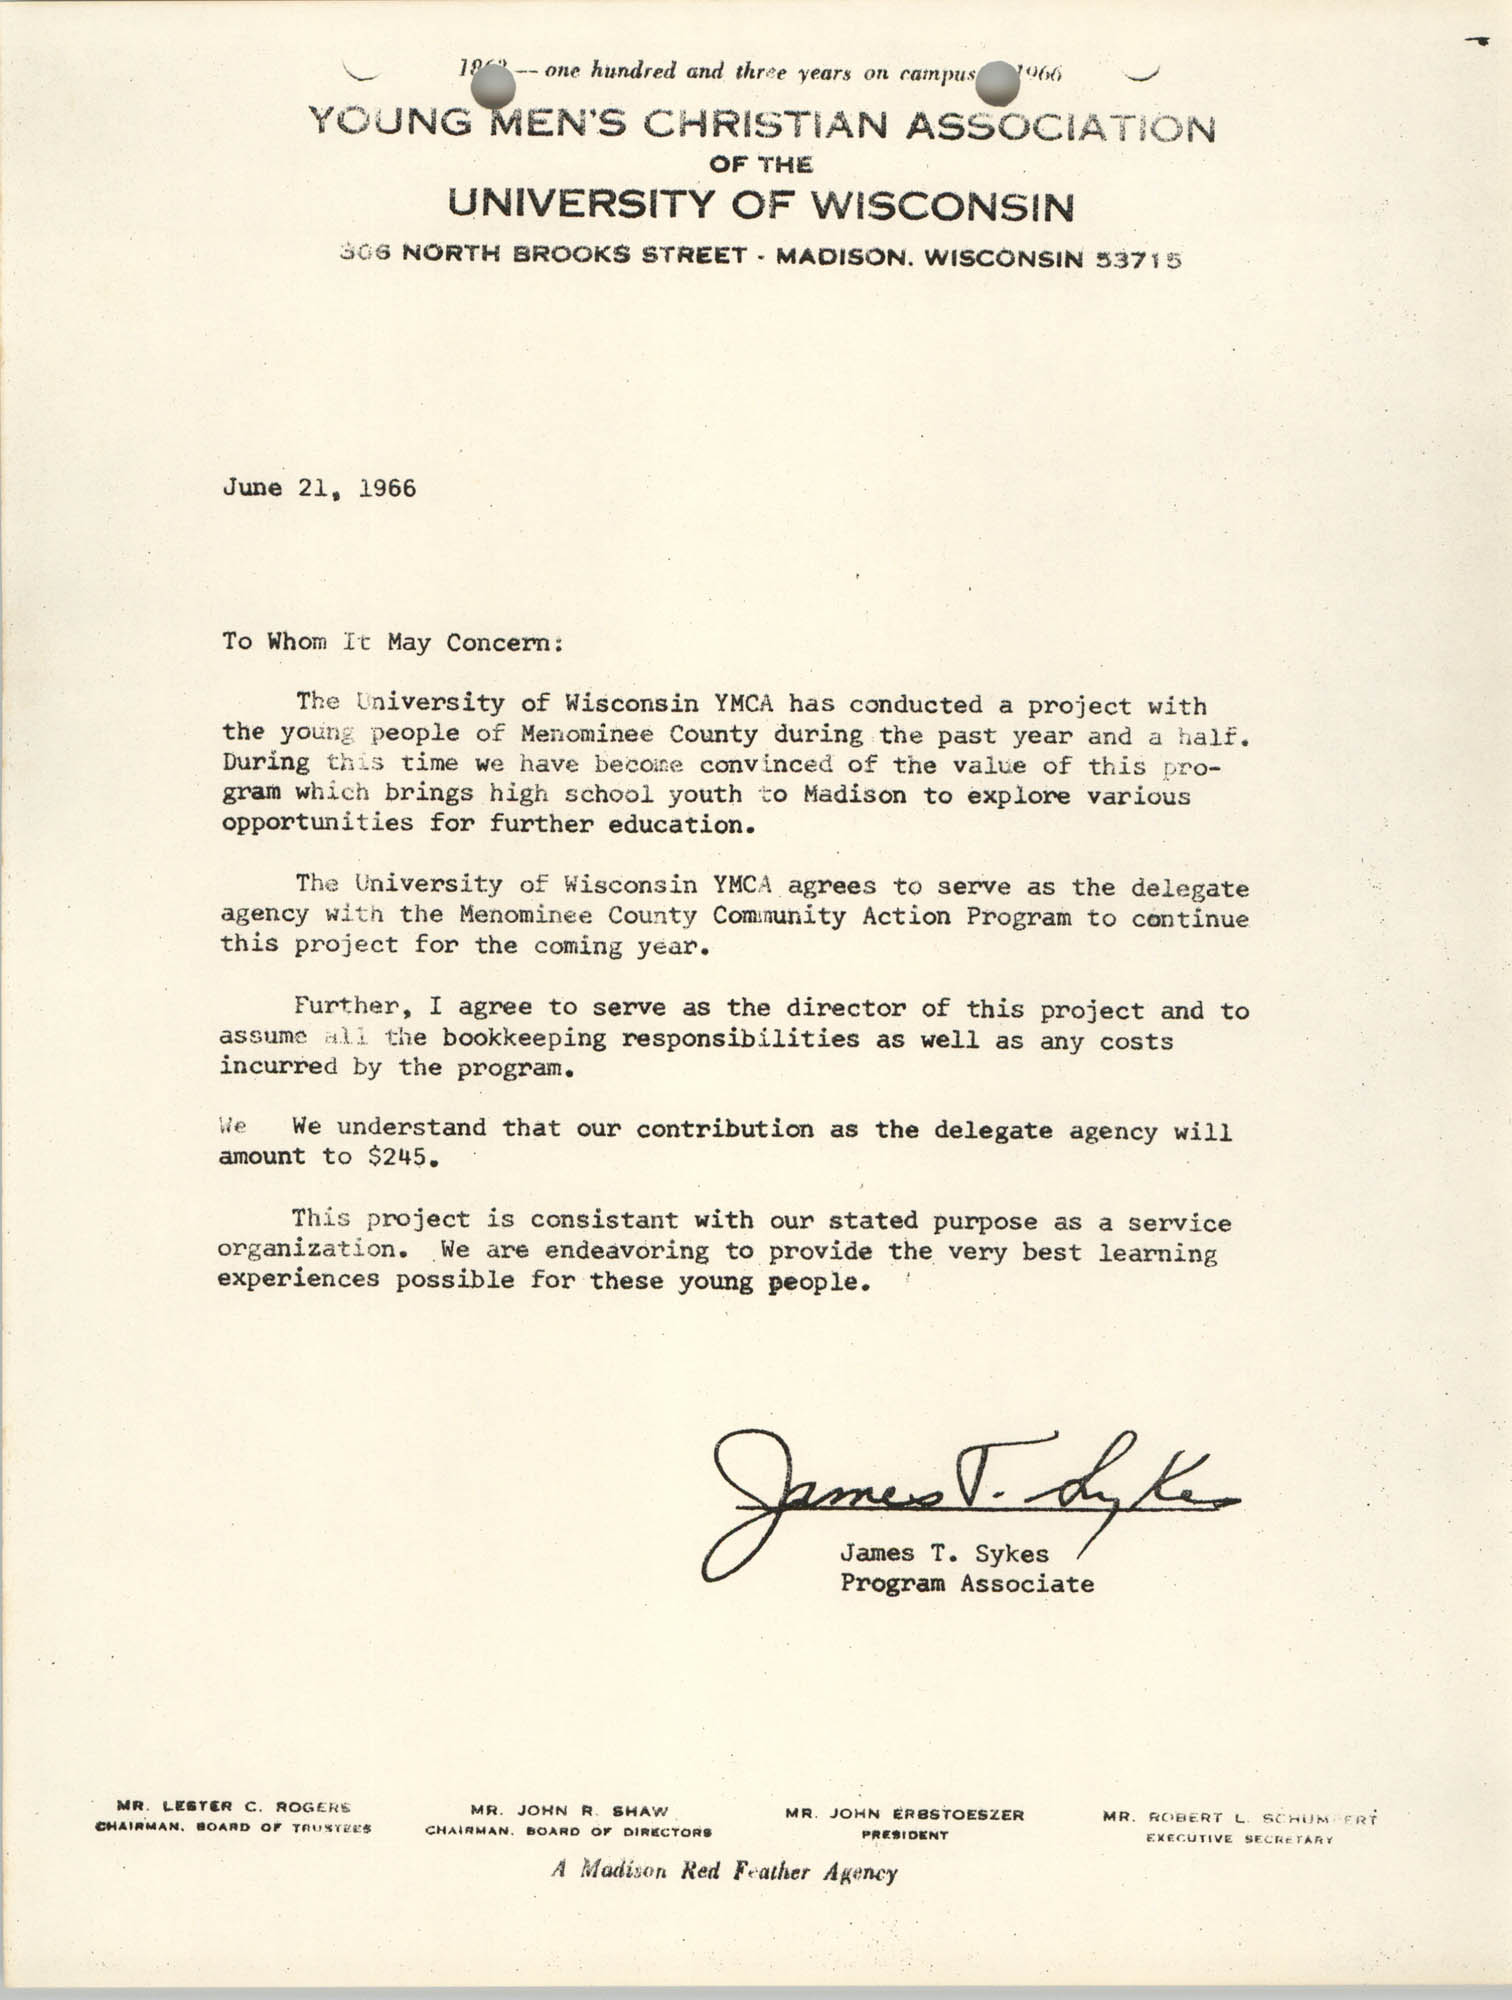 Letter from James T. Sykes to